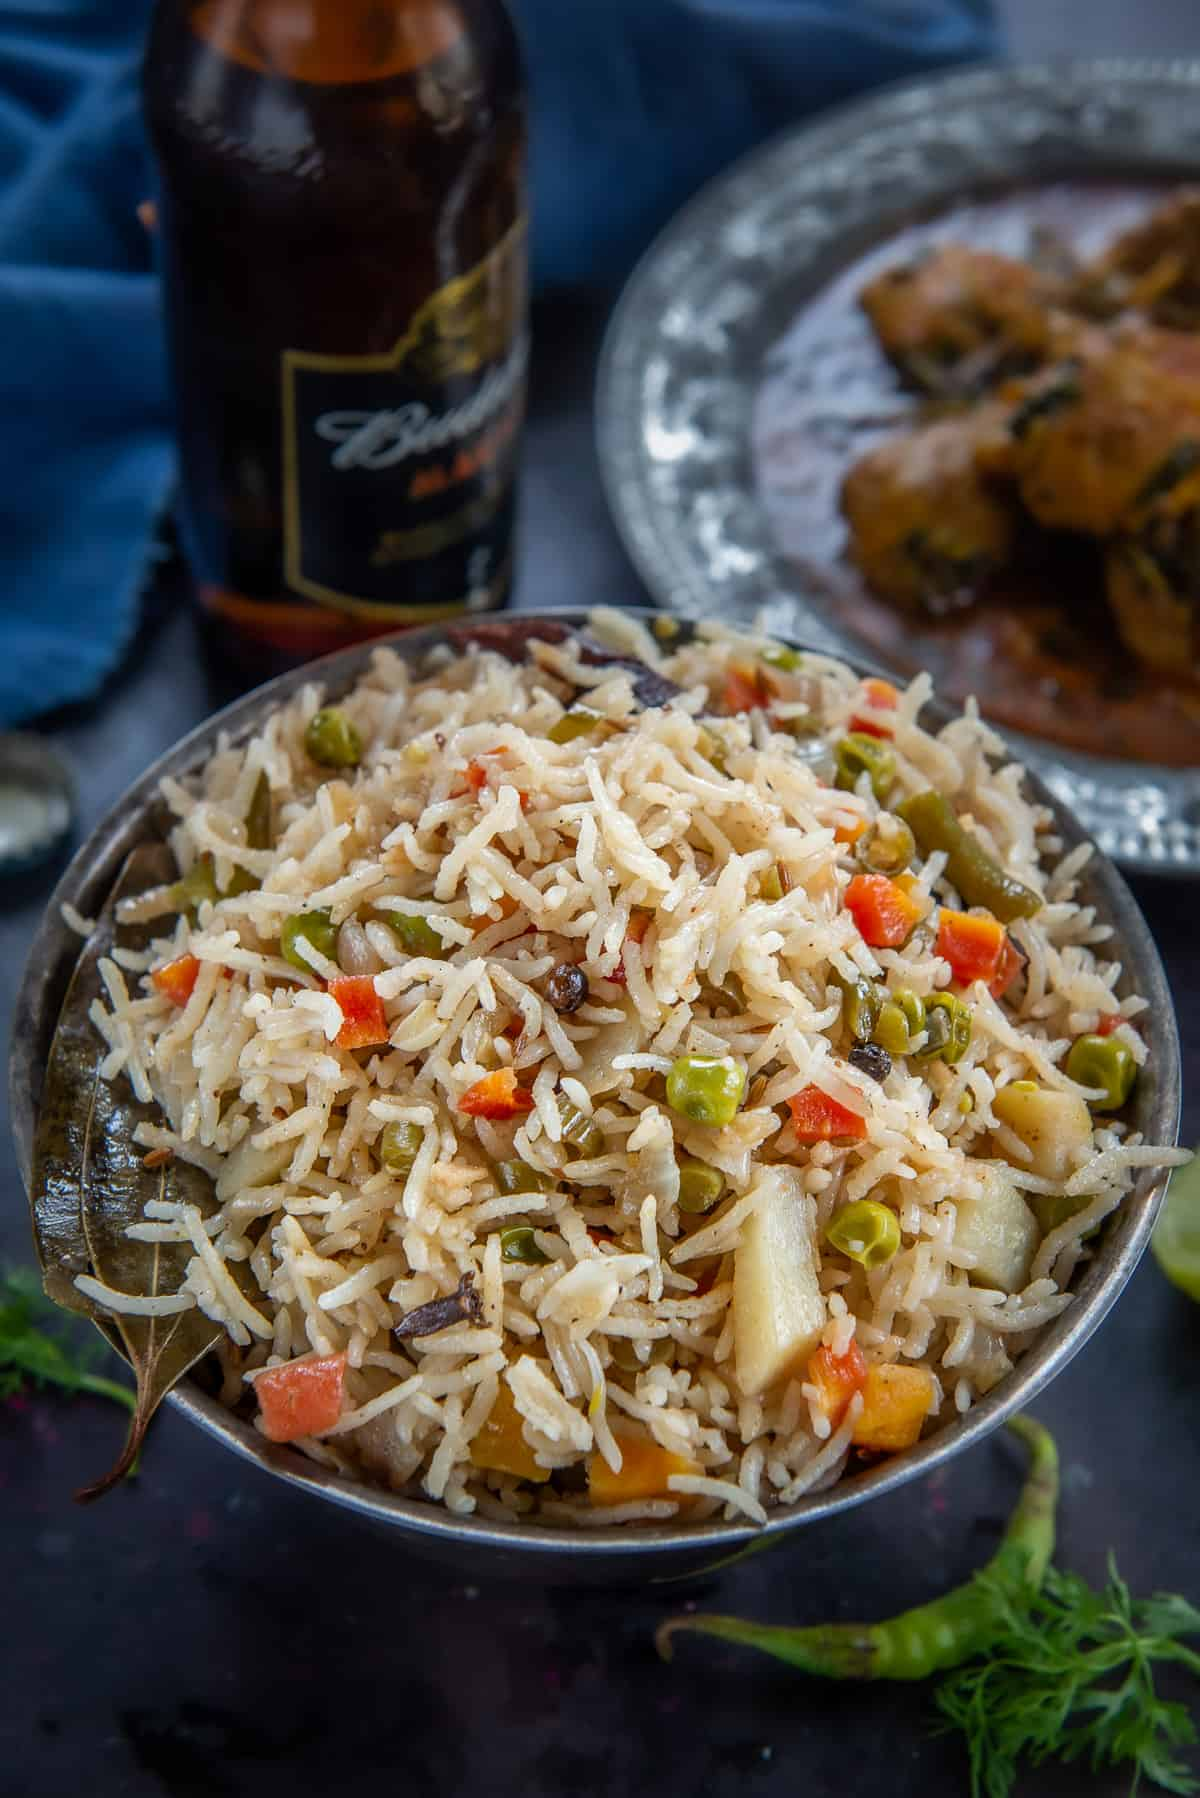 Veg Pulao served in a bowl.